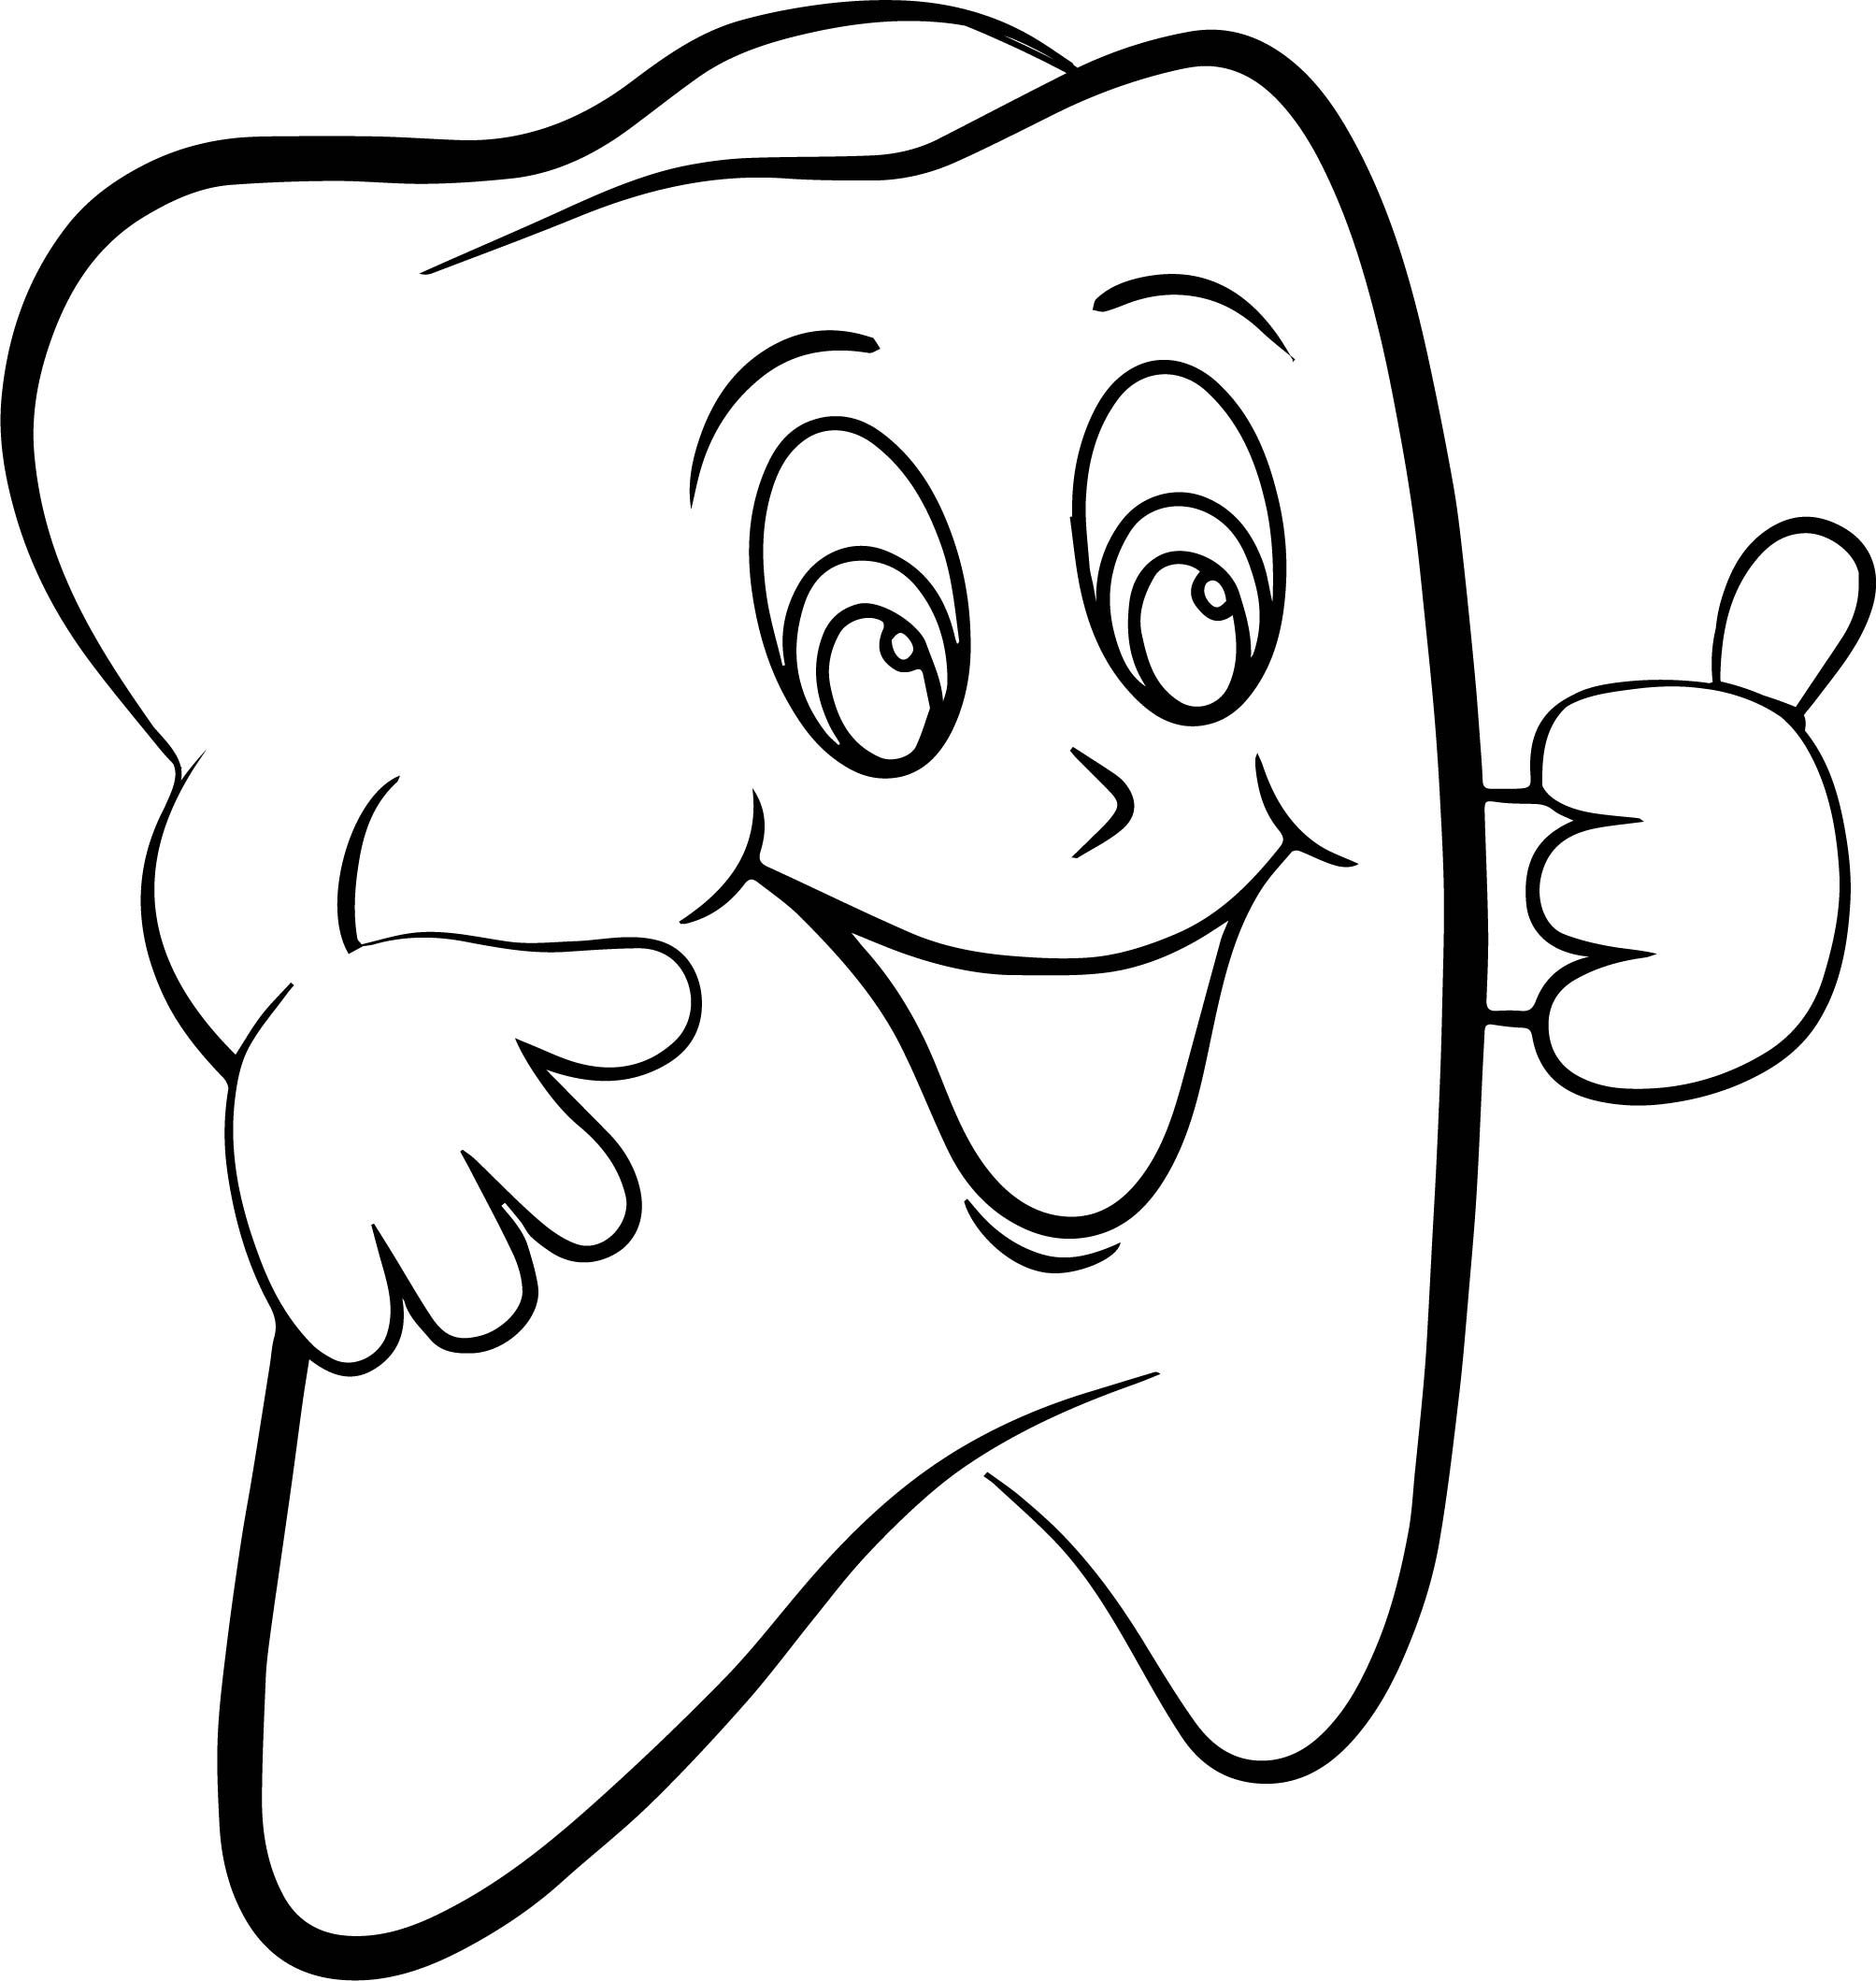 Super Dental Tooth Coloring Page Wecoloringpage Coloring Pages